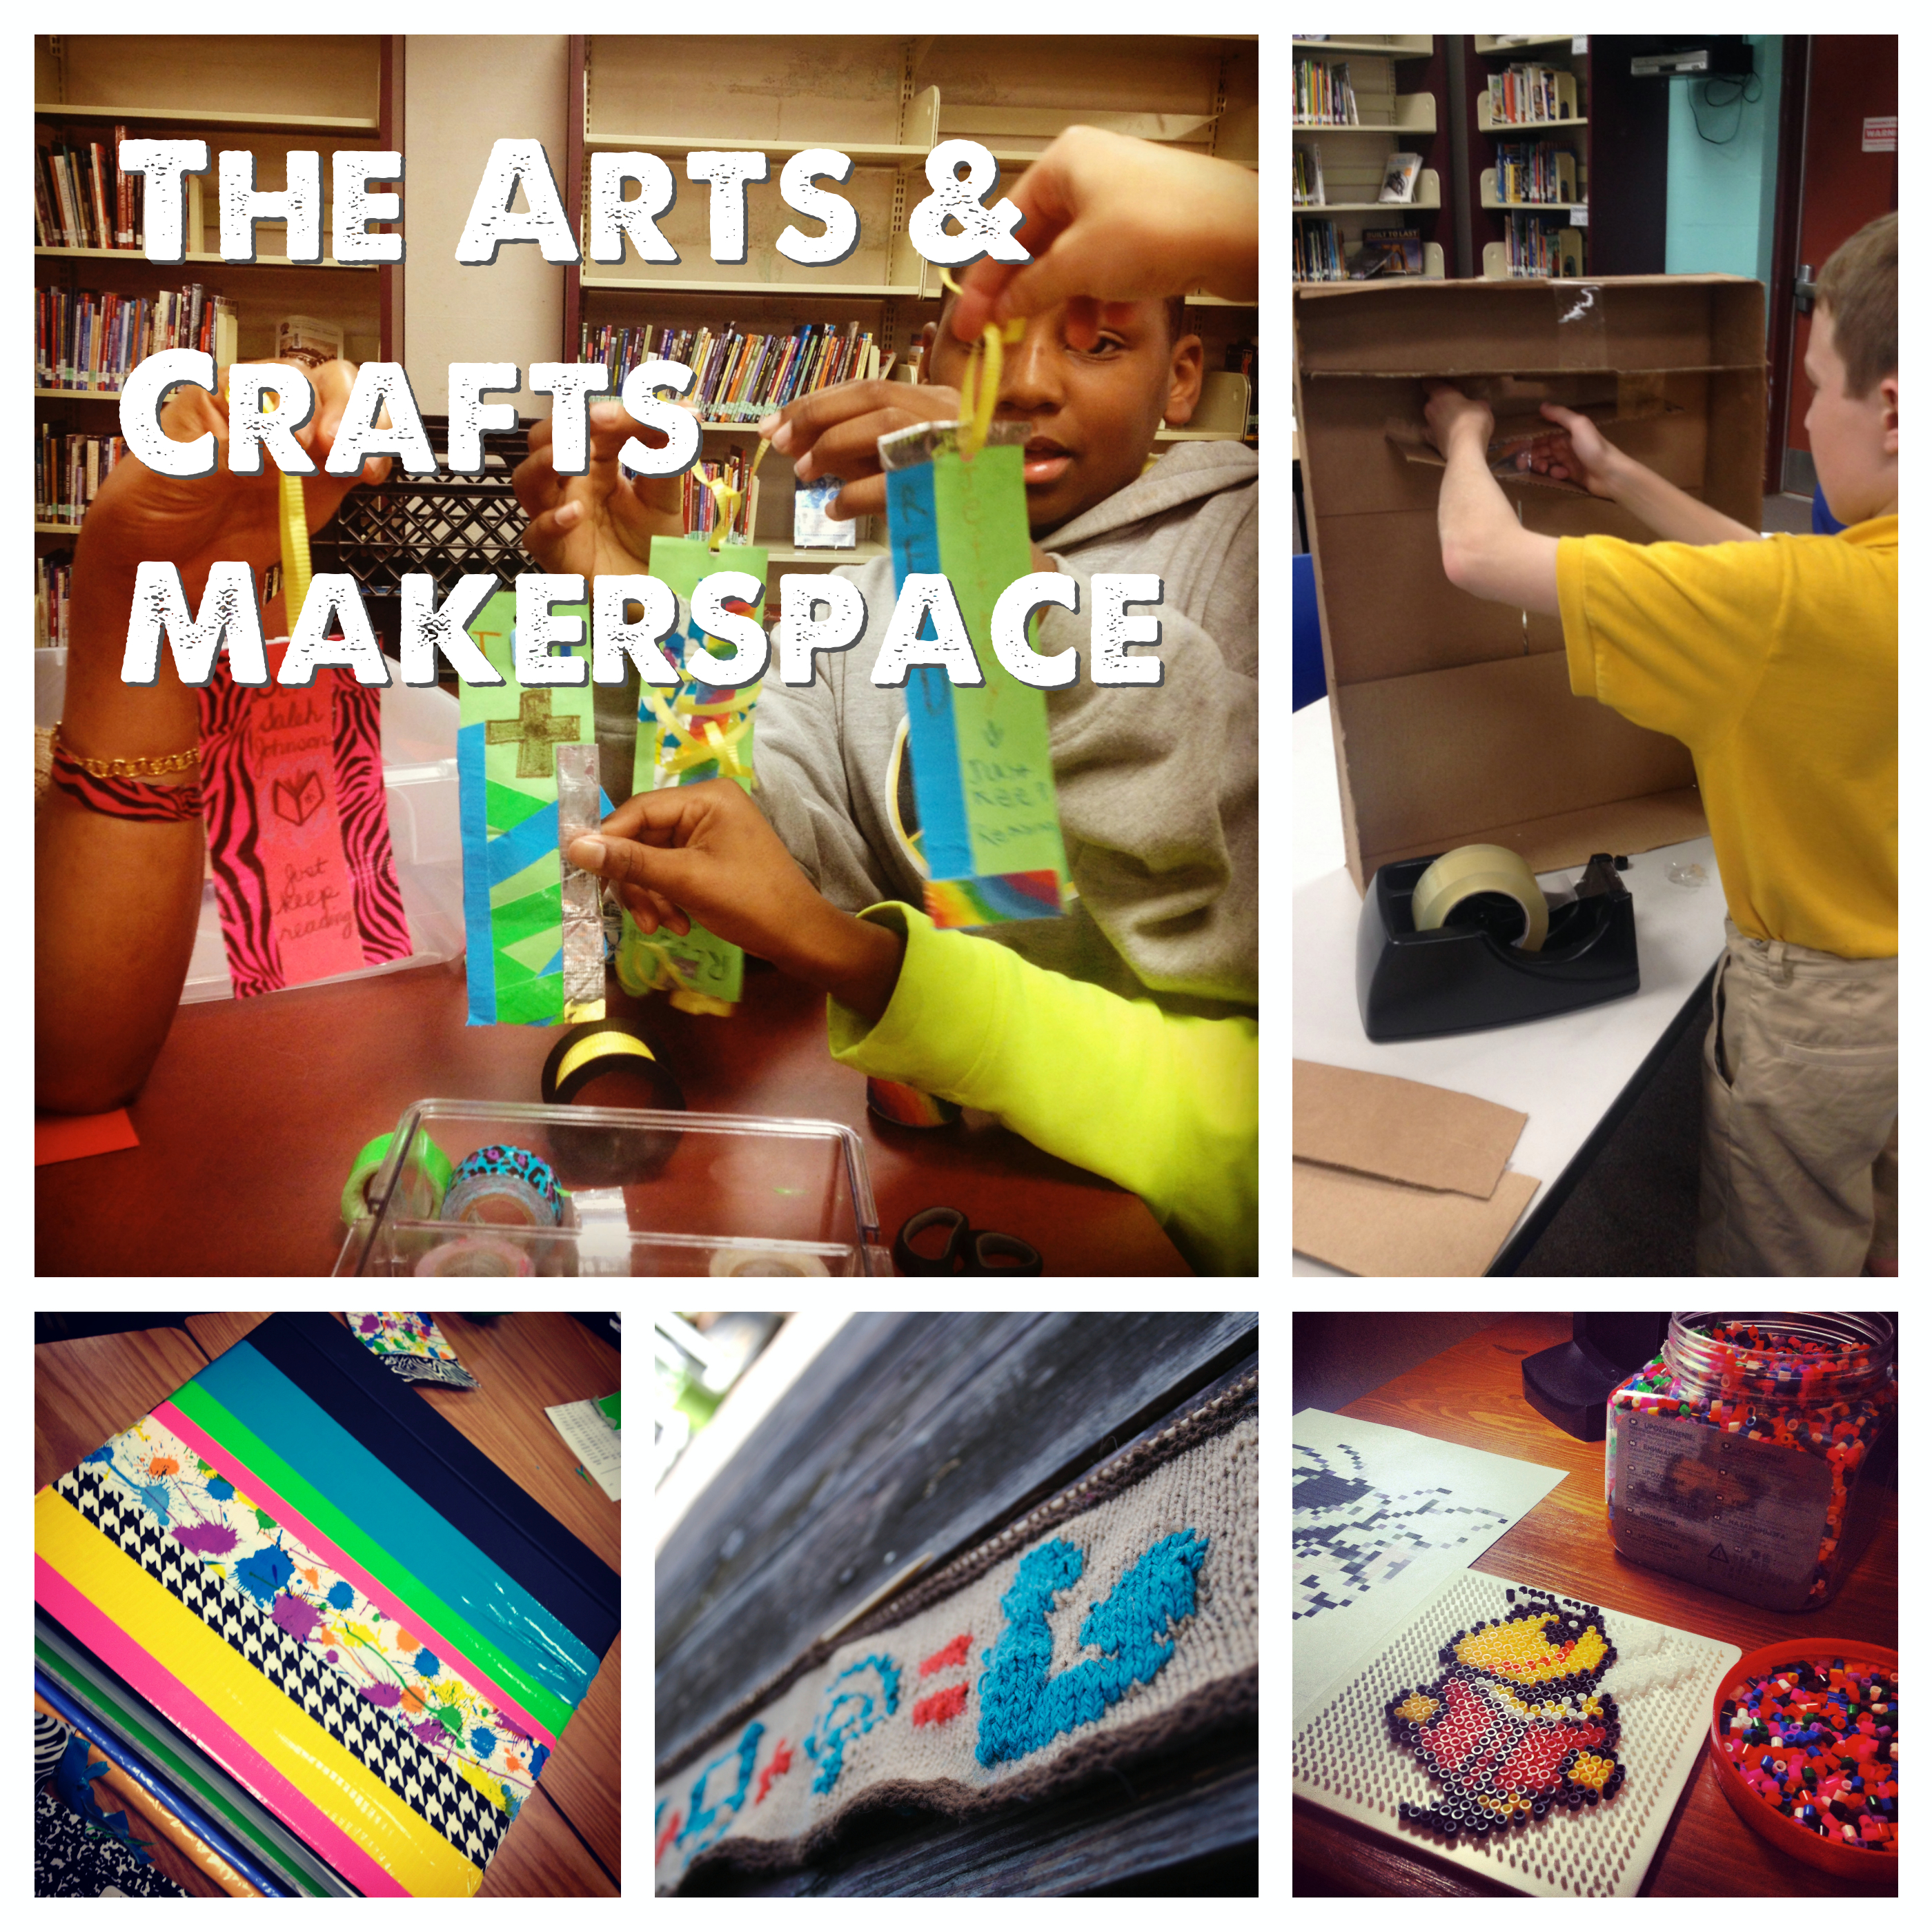 The arts and crafts makerspace renovated learning for Walmart arts and crafts